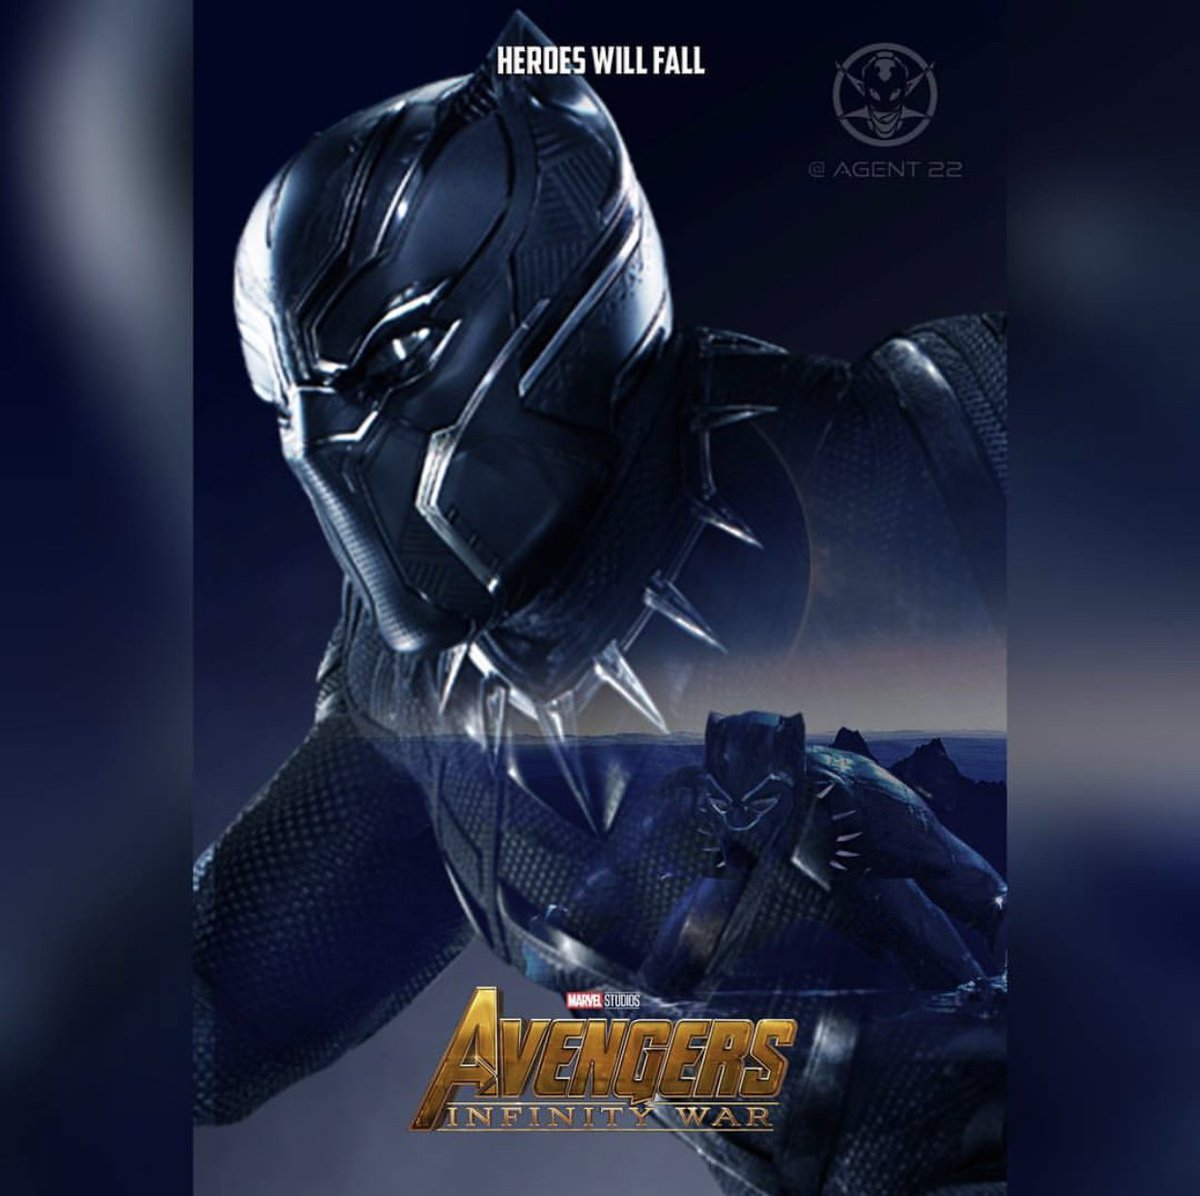 FAN MADE @Avengers #InfinityWar character posters 2/2 #WinterSolider #BlackPanther #DoctorStrange #StarLord <br>http://pic.twitter.com/ZE92pXm8RY